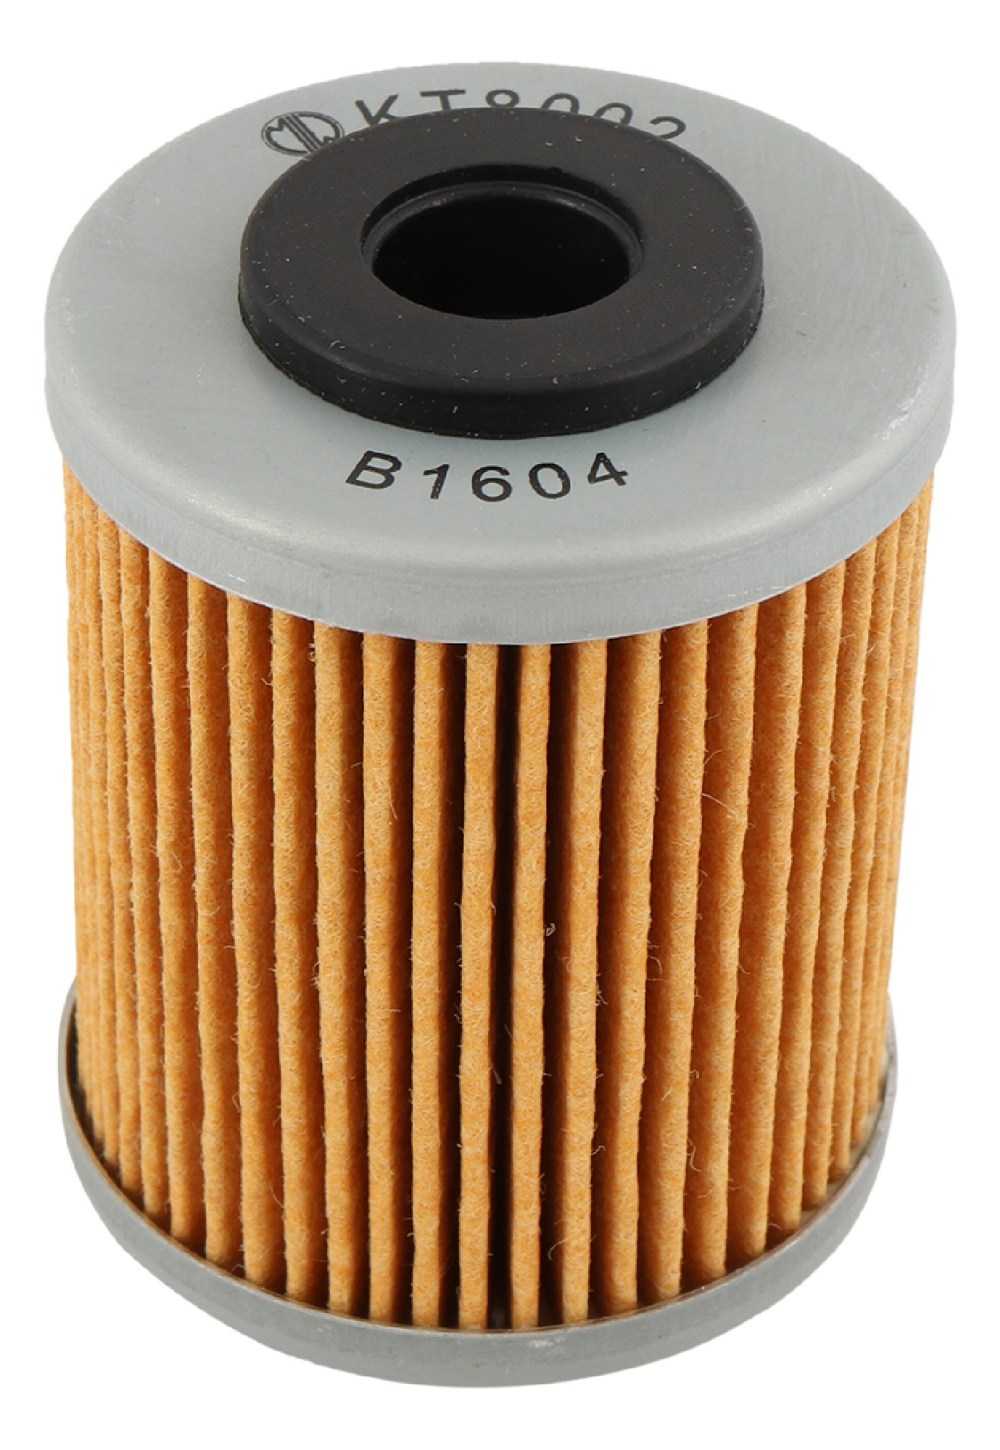 medium resolution of details about new miw oil filter for ktm 520 sx racing 00 02 525 exc 07 59038046144